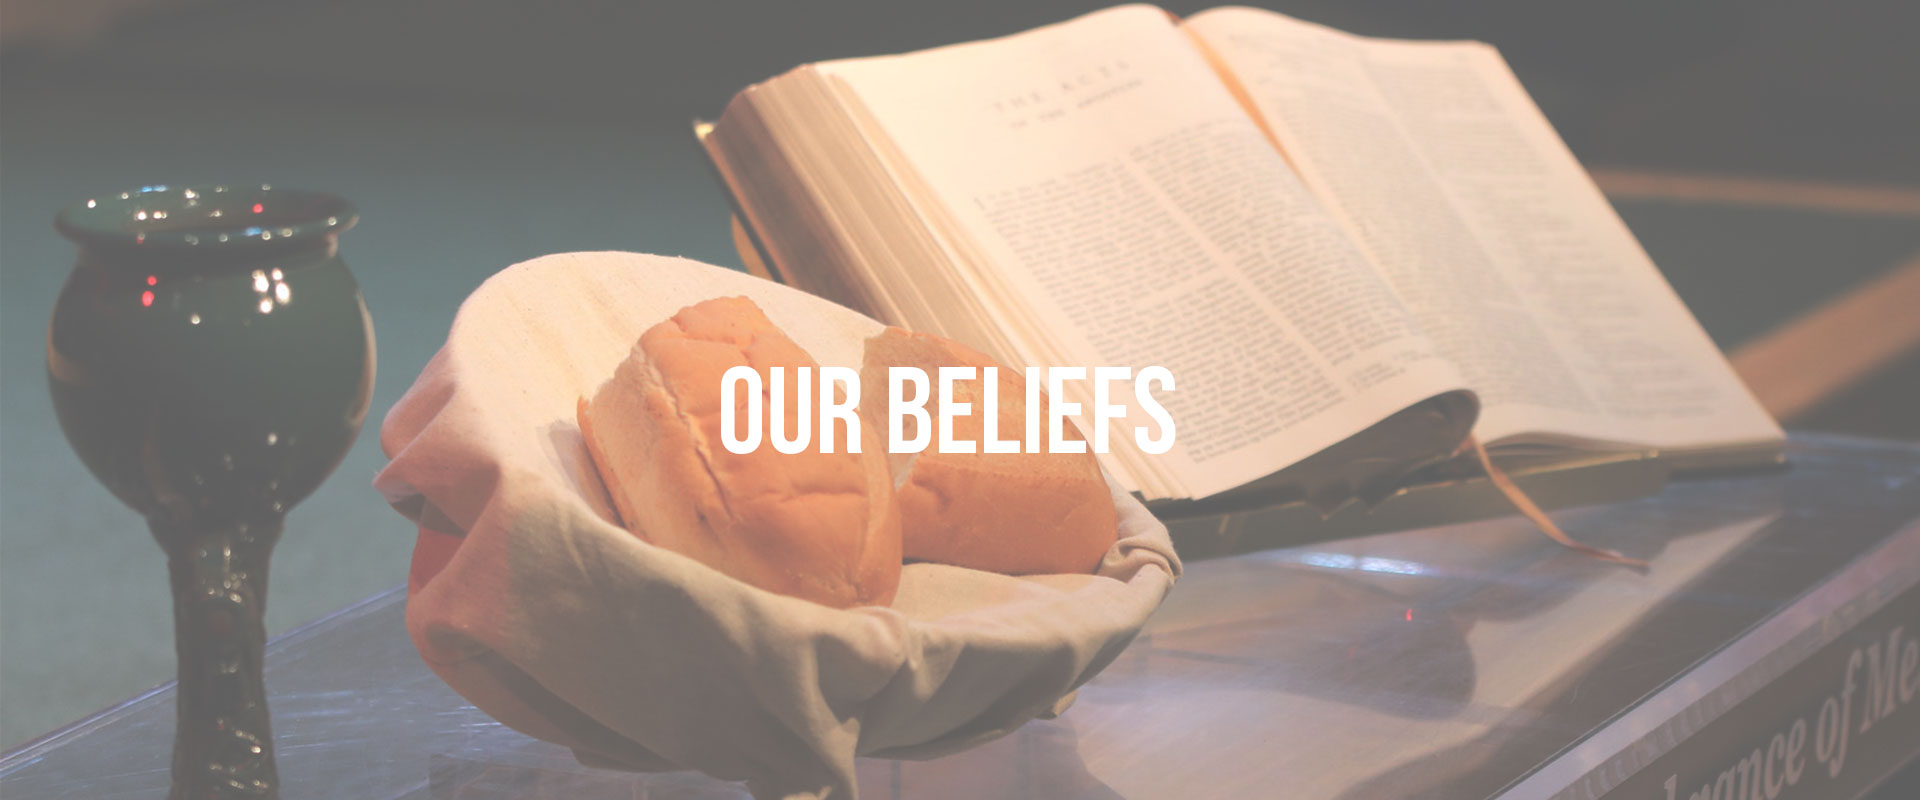 our-beliefs-header-2